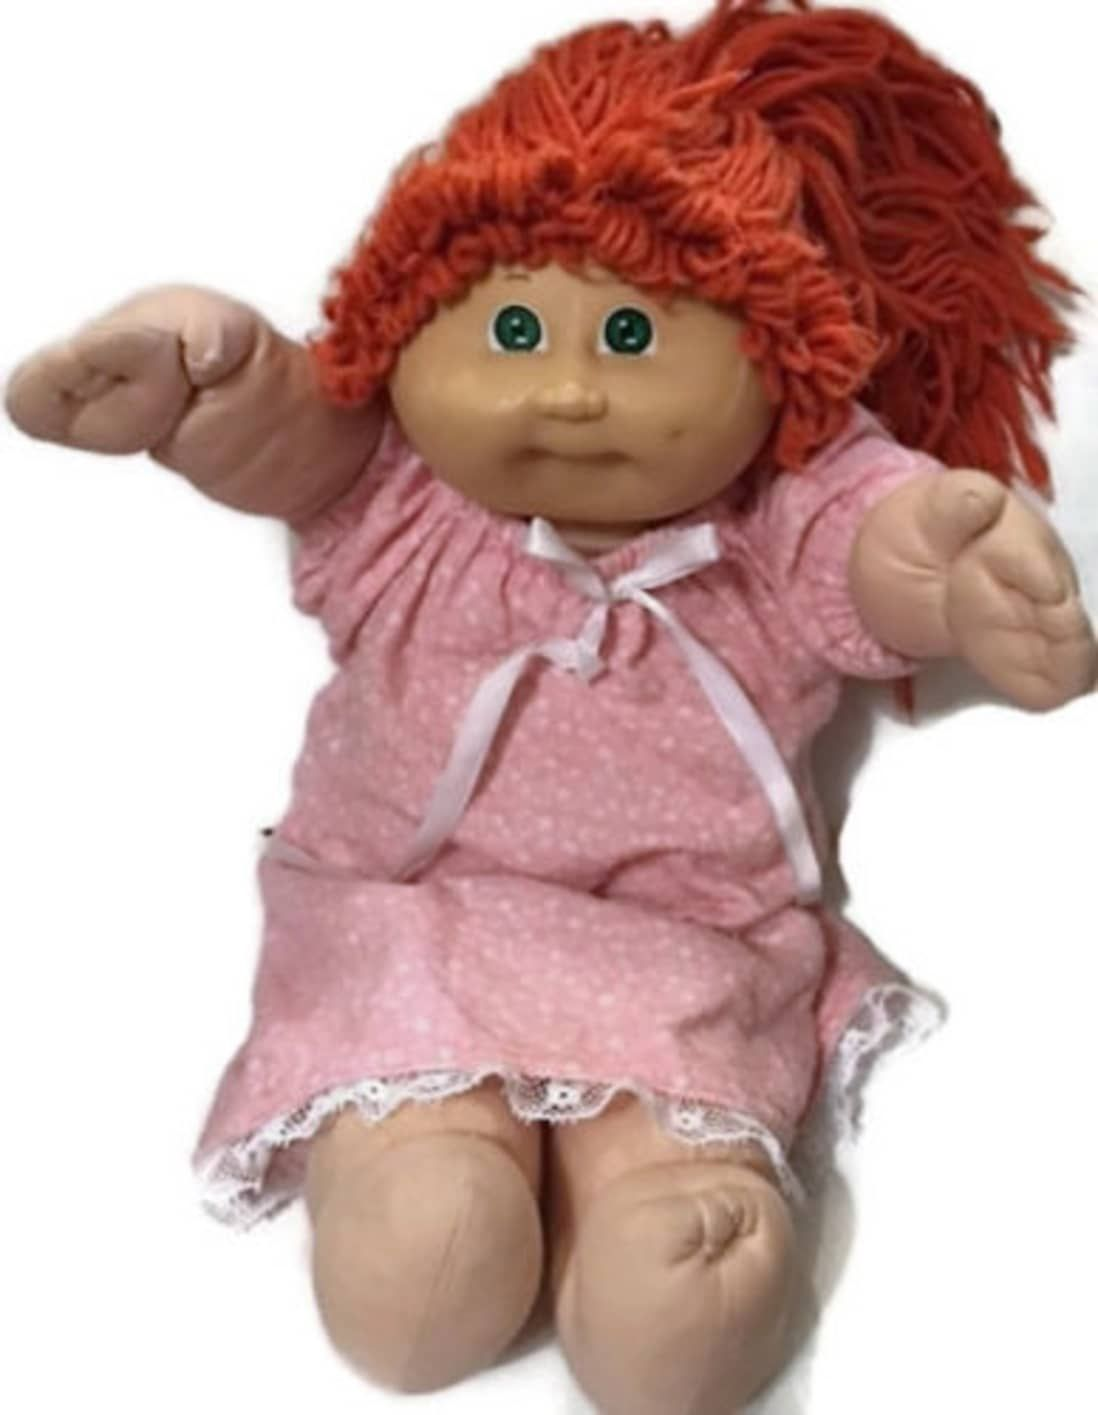 Here S How Much Your Vintage Cabbage Patch Dolls Could Be Worth Cabbage Patch Kids Dolls Vintage Cabbage Patch Dolls Halloween Bags